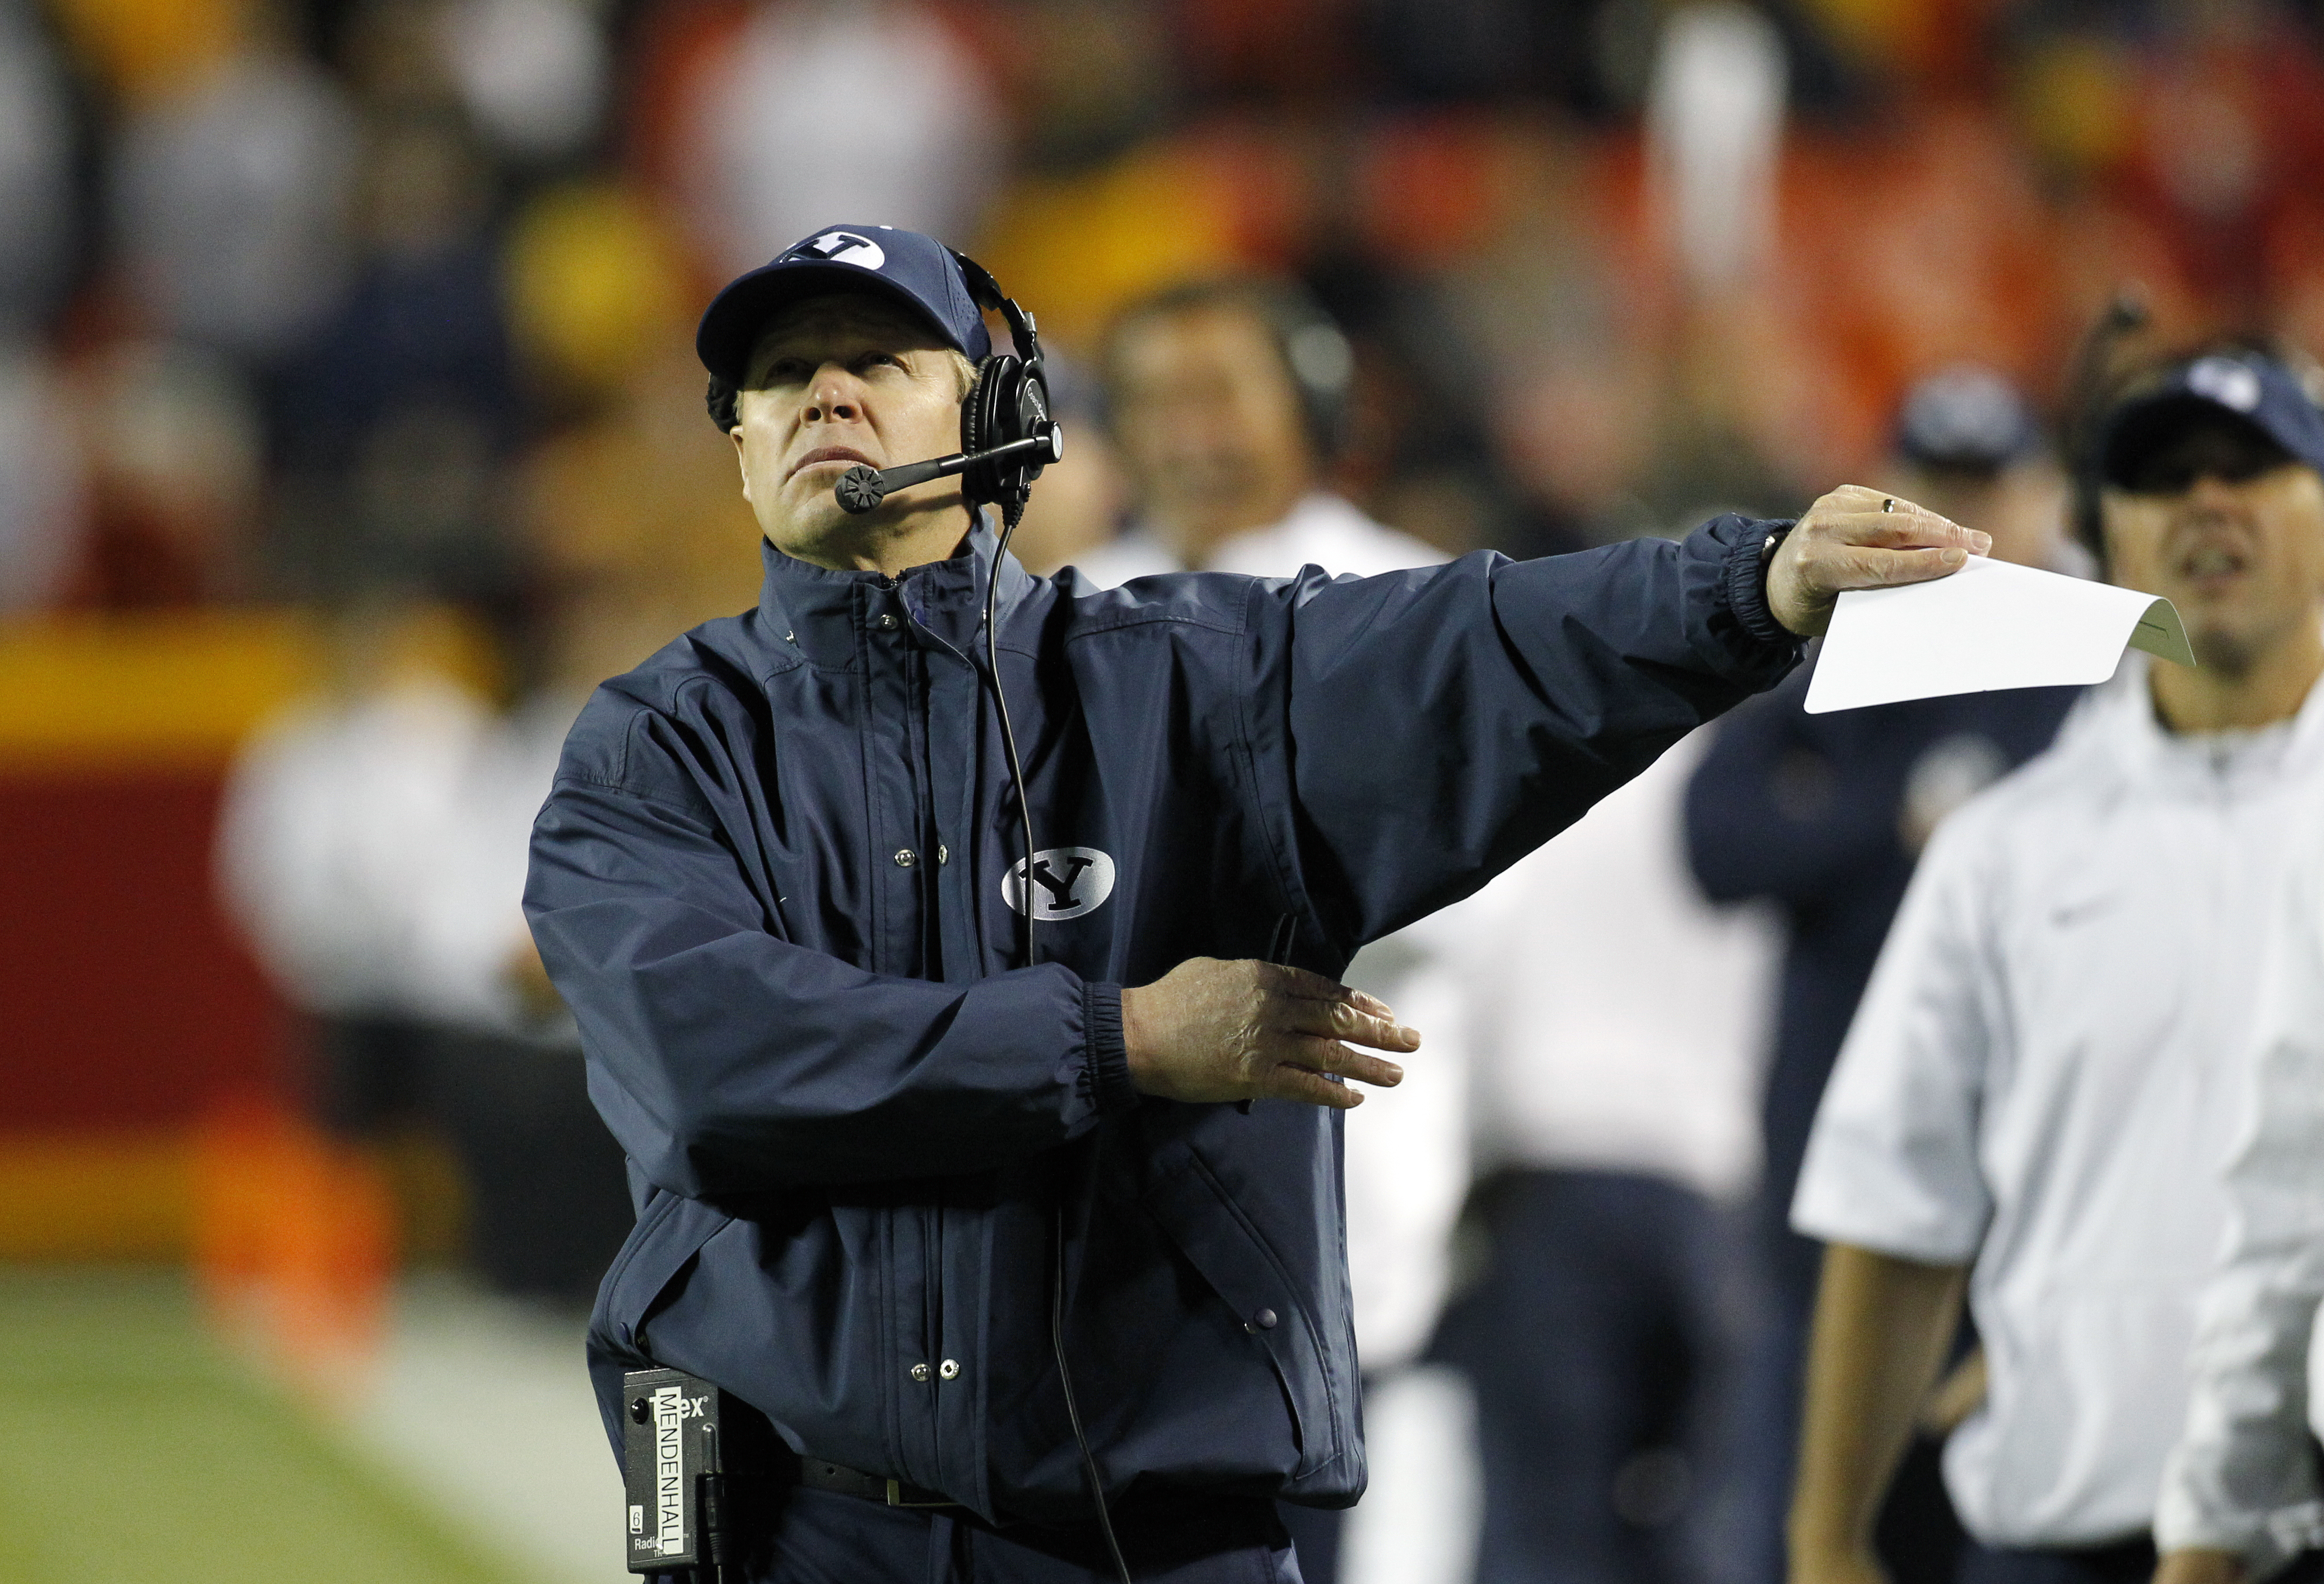 BYU head coach Bronco Mendenhall reacts to a replay in the second half of a college football game against Missouri at Arrowhead Stadium, Saturday, Nov. 14, 2015, in Kansas City, Mo. Missouri beat BYU 20-16. (AP Photo/Colin E. Braley)